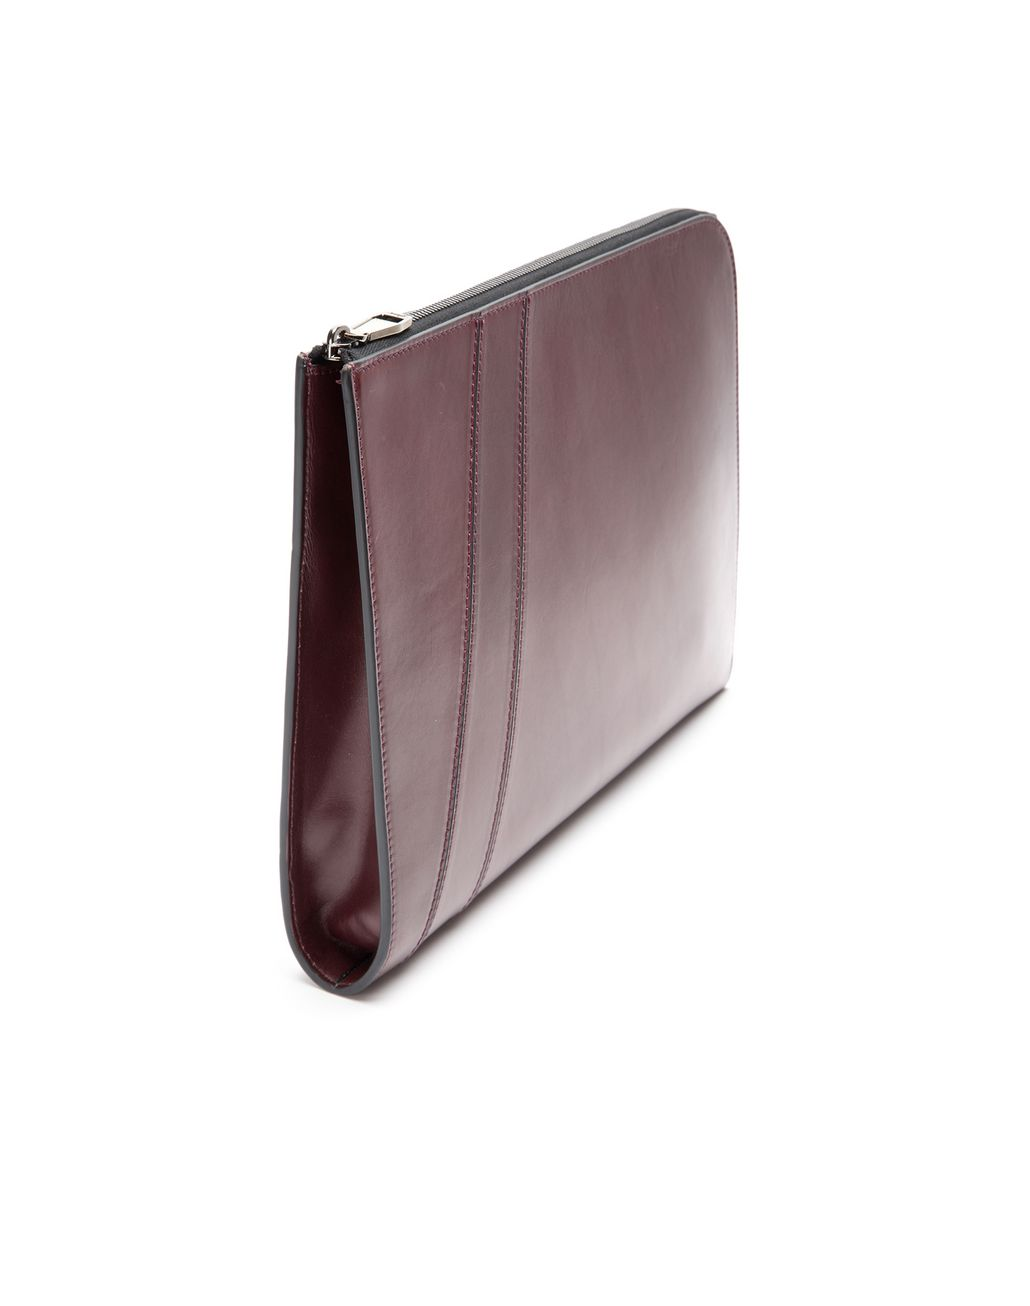 BRIONI Bordeaux Folio Document Holder Leather Goods Man d